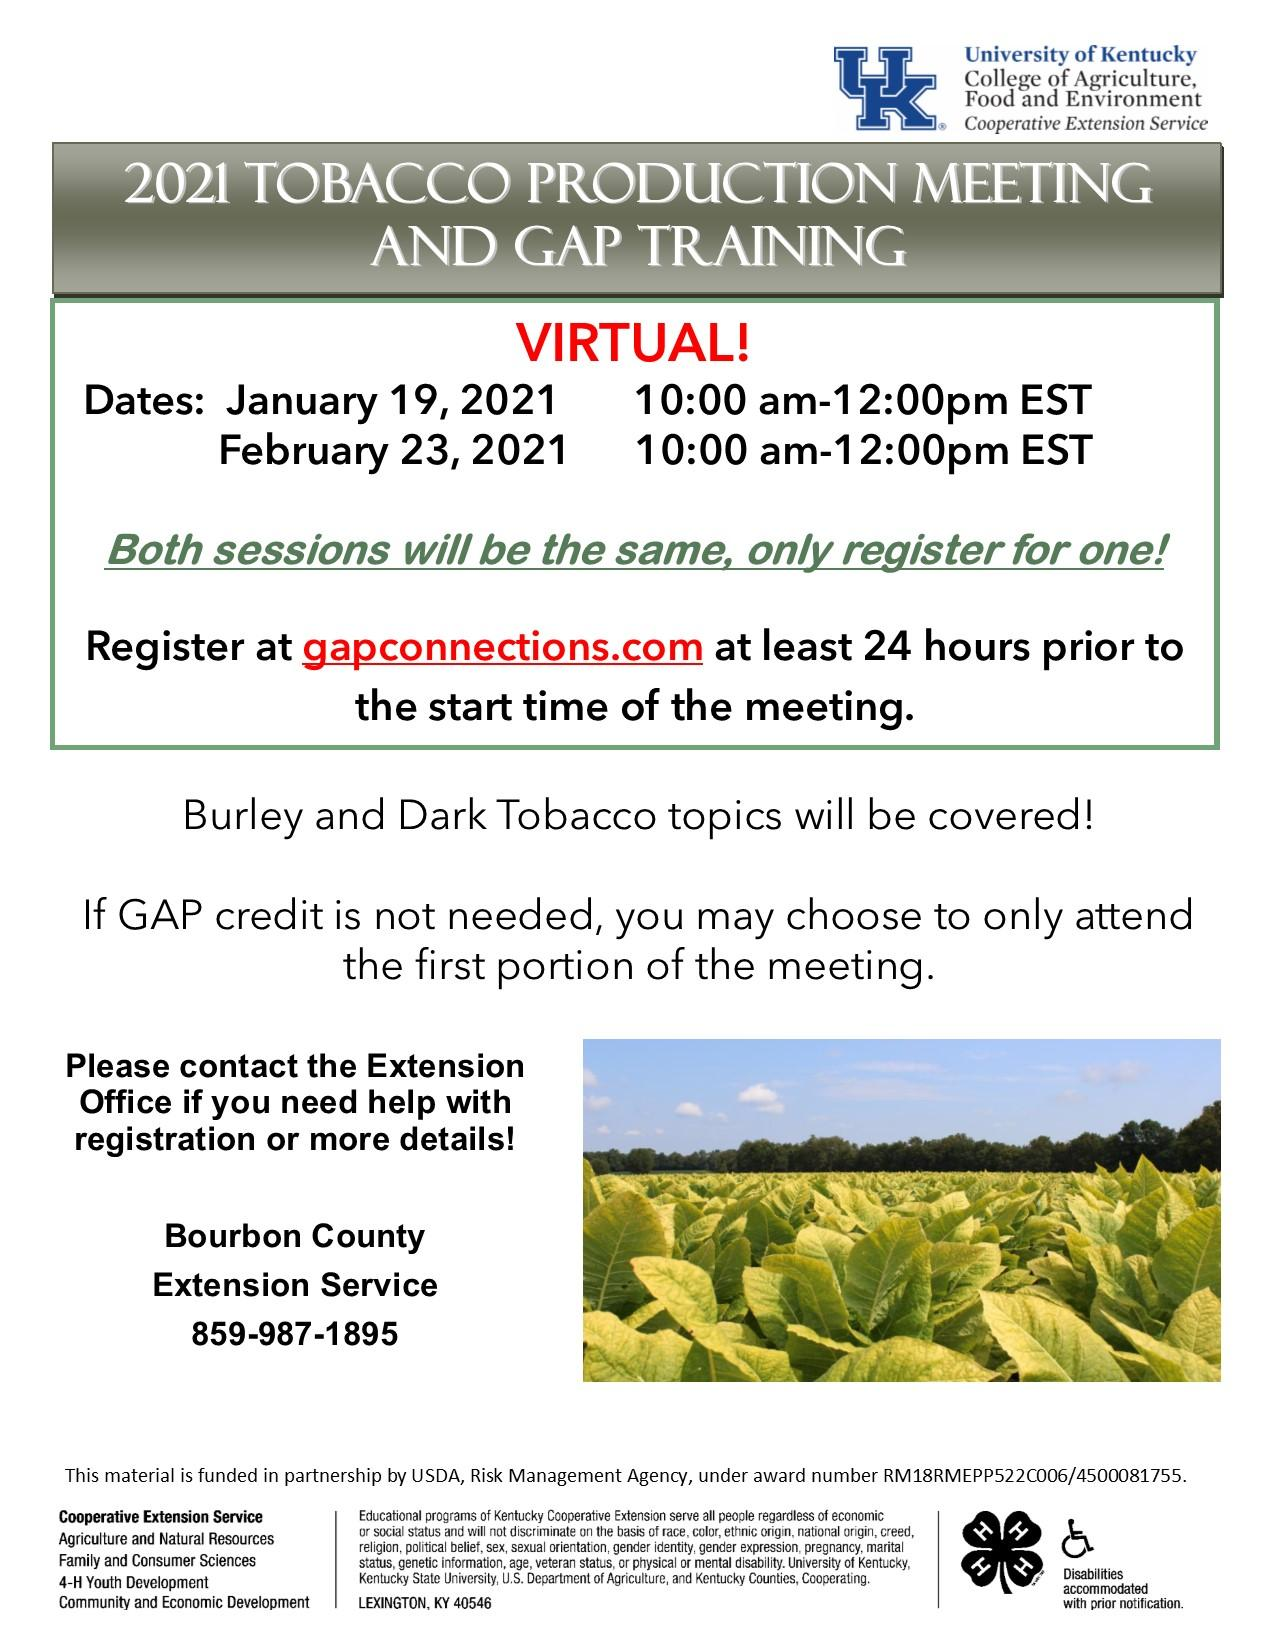 2021 Tobacco Gap Training